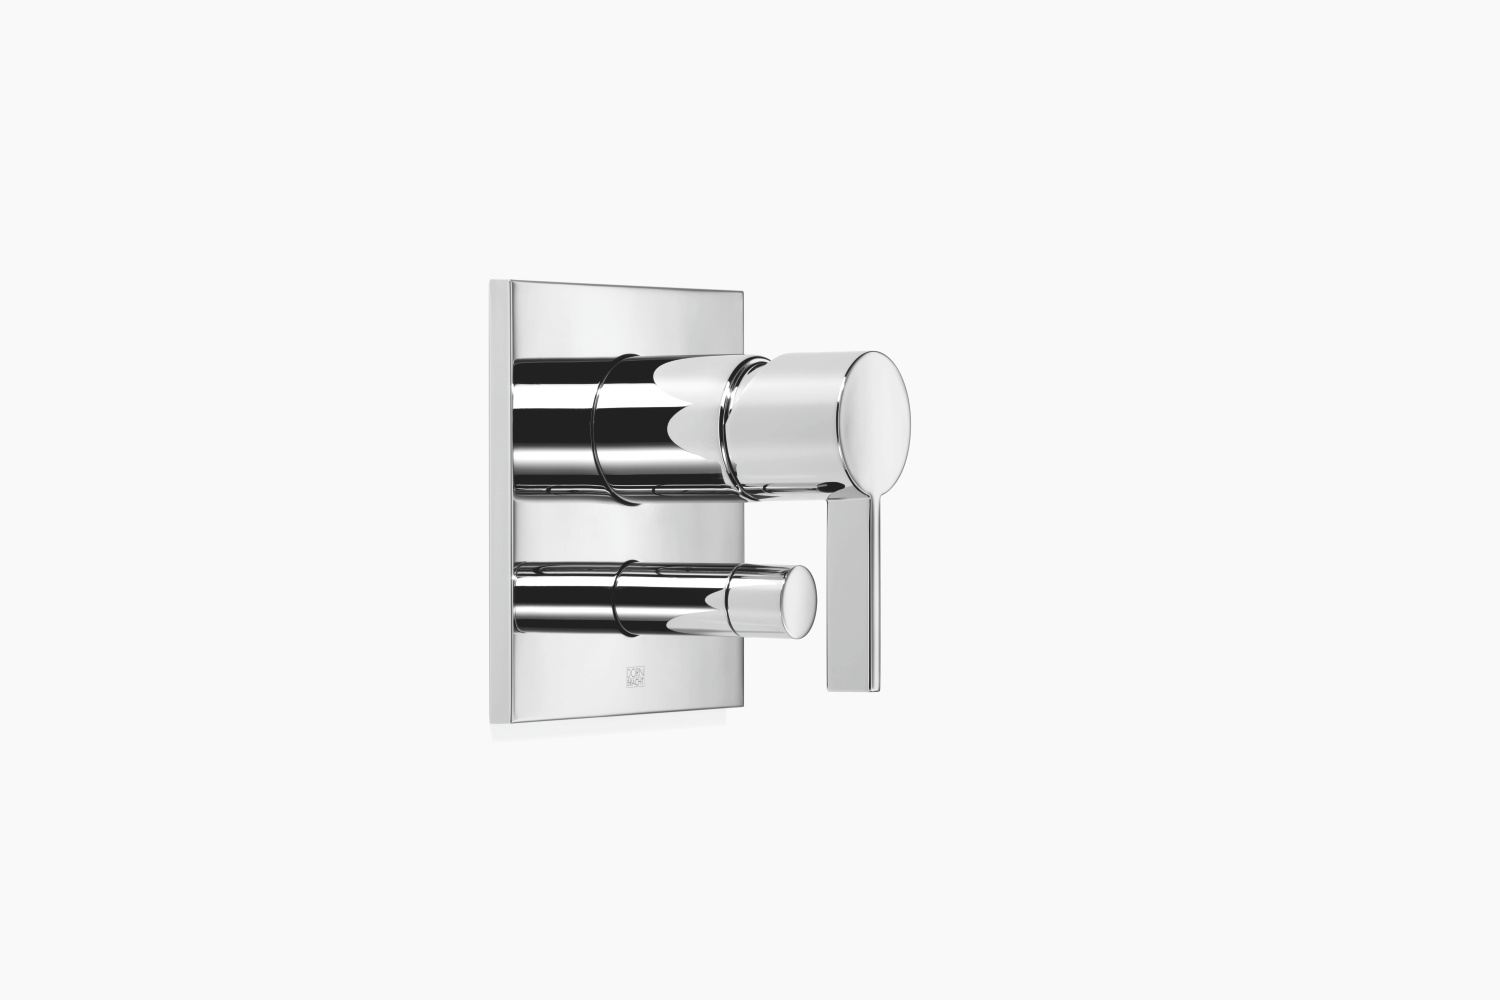 xSTREAM Concealed single-lever mixer with diverter - polished chrome